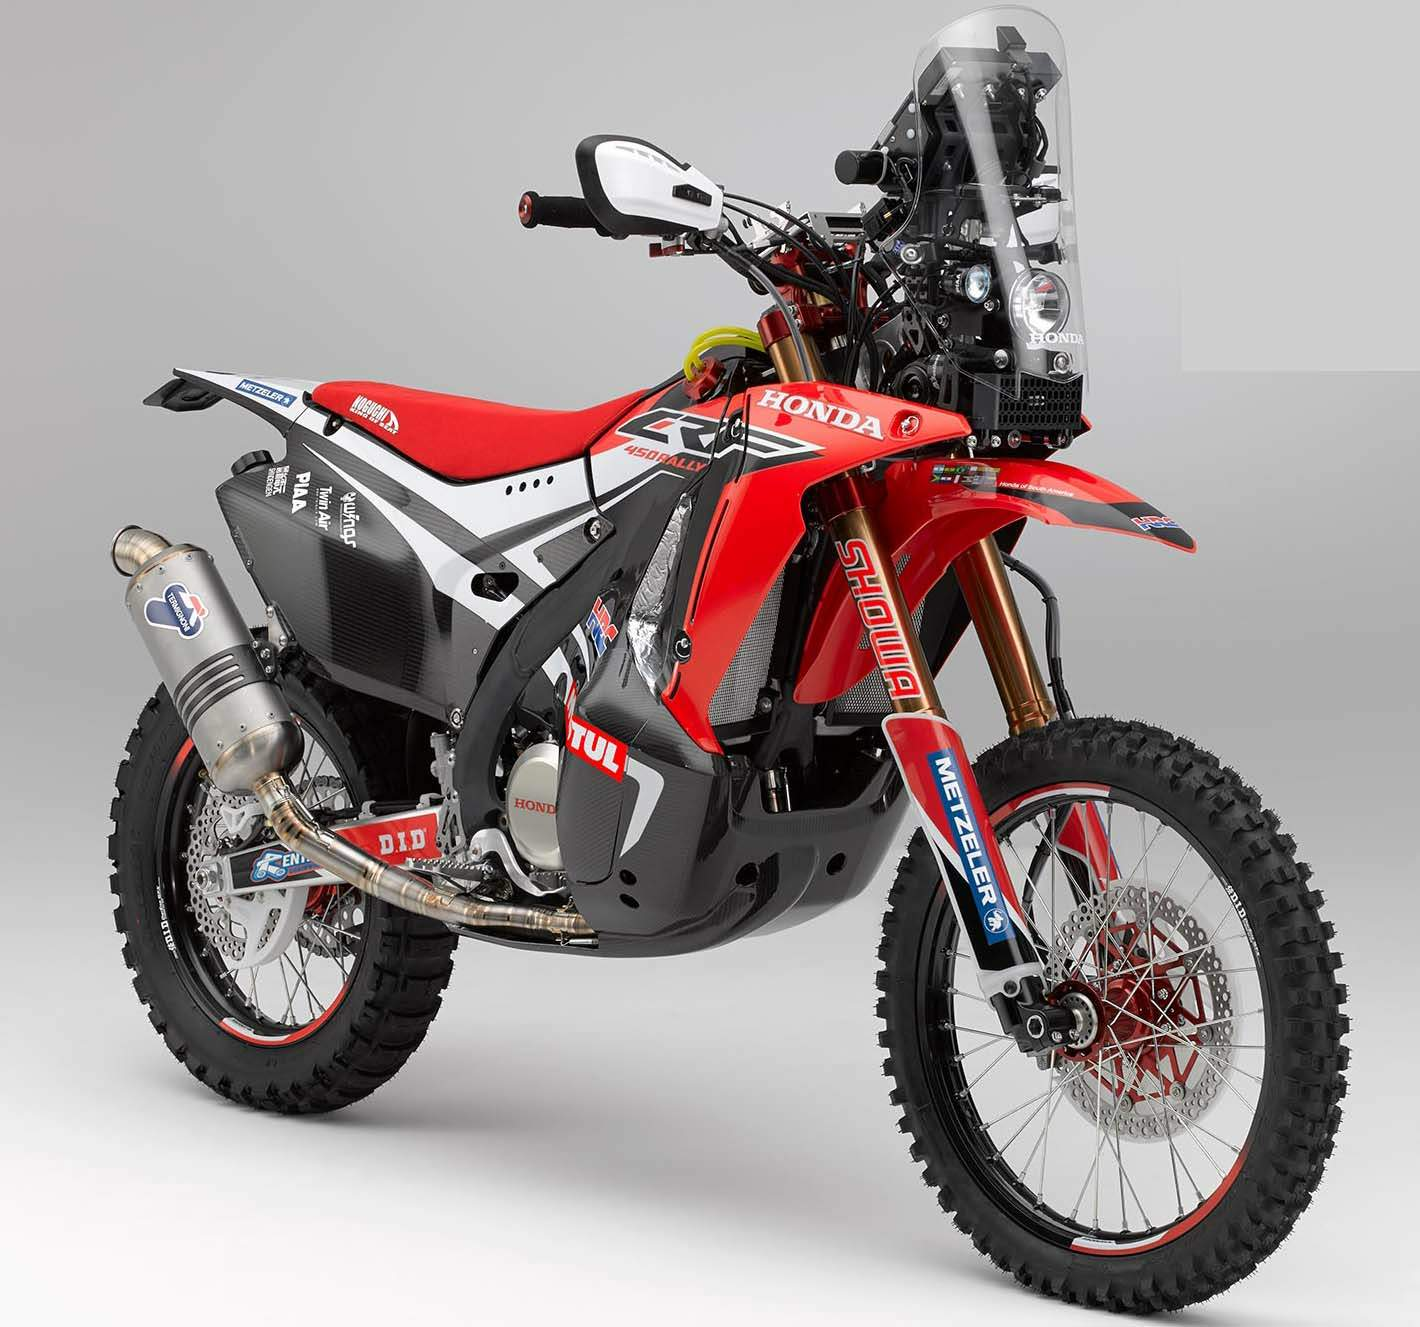 Groovy Honda Crf450 Rally Specs 2013 2014 2015 2016 2017 Dailytribune Chair Design For Home Dailytribuneorg